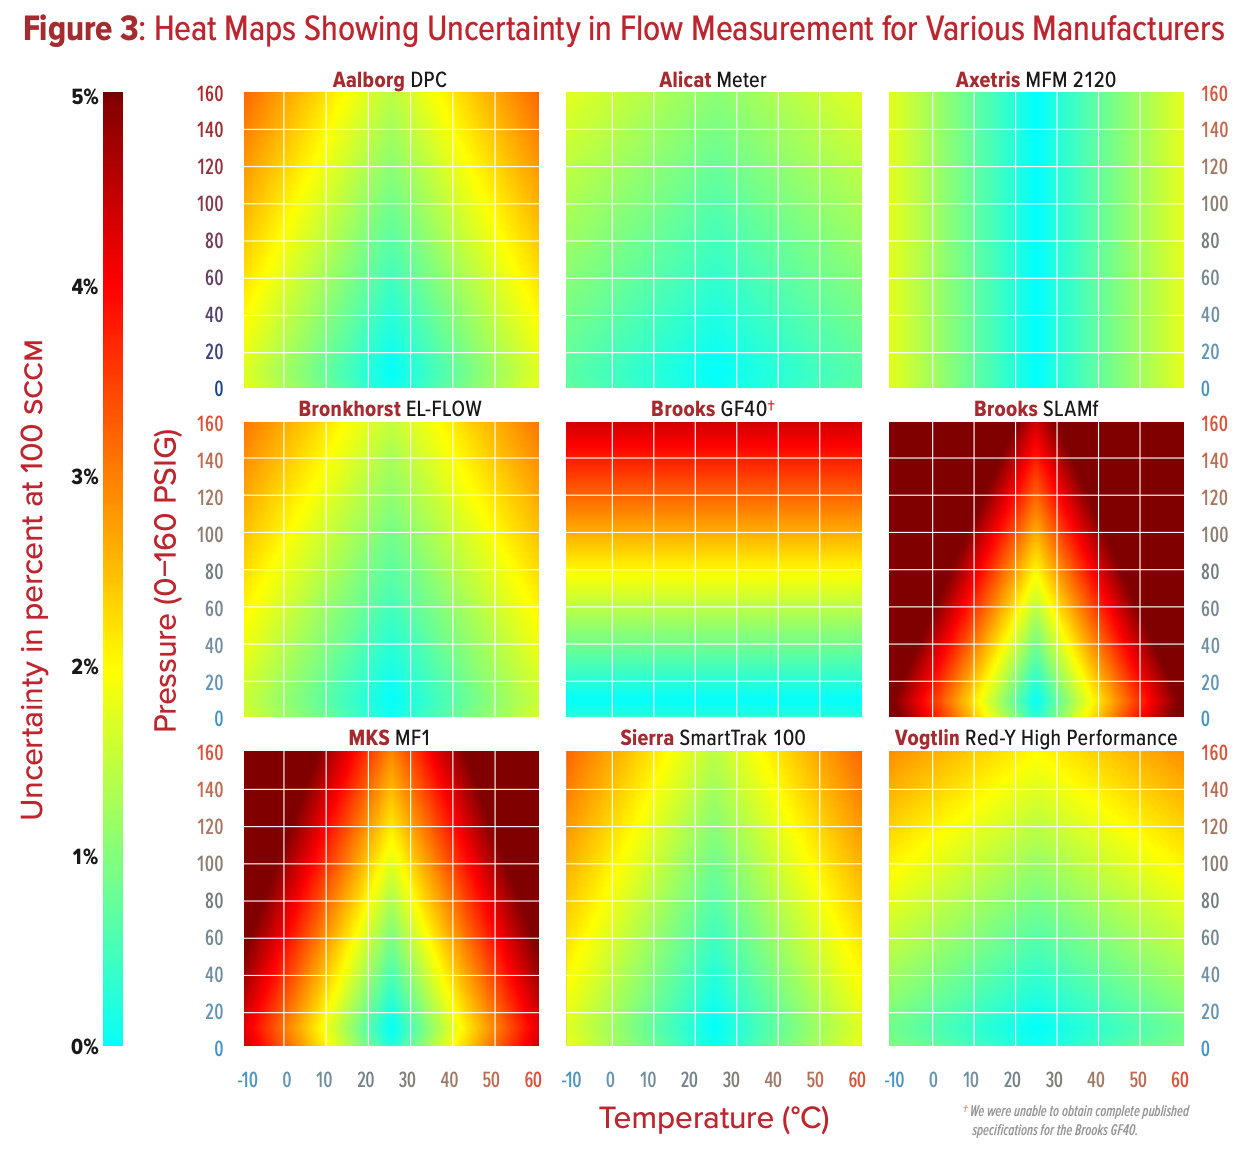 Heat maps hsowing Uncertainty in flow measurement for various manufacturers